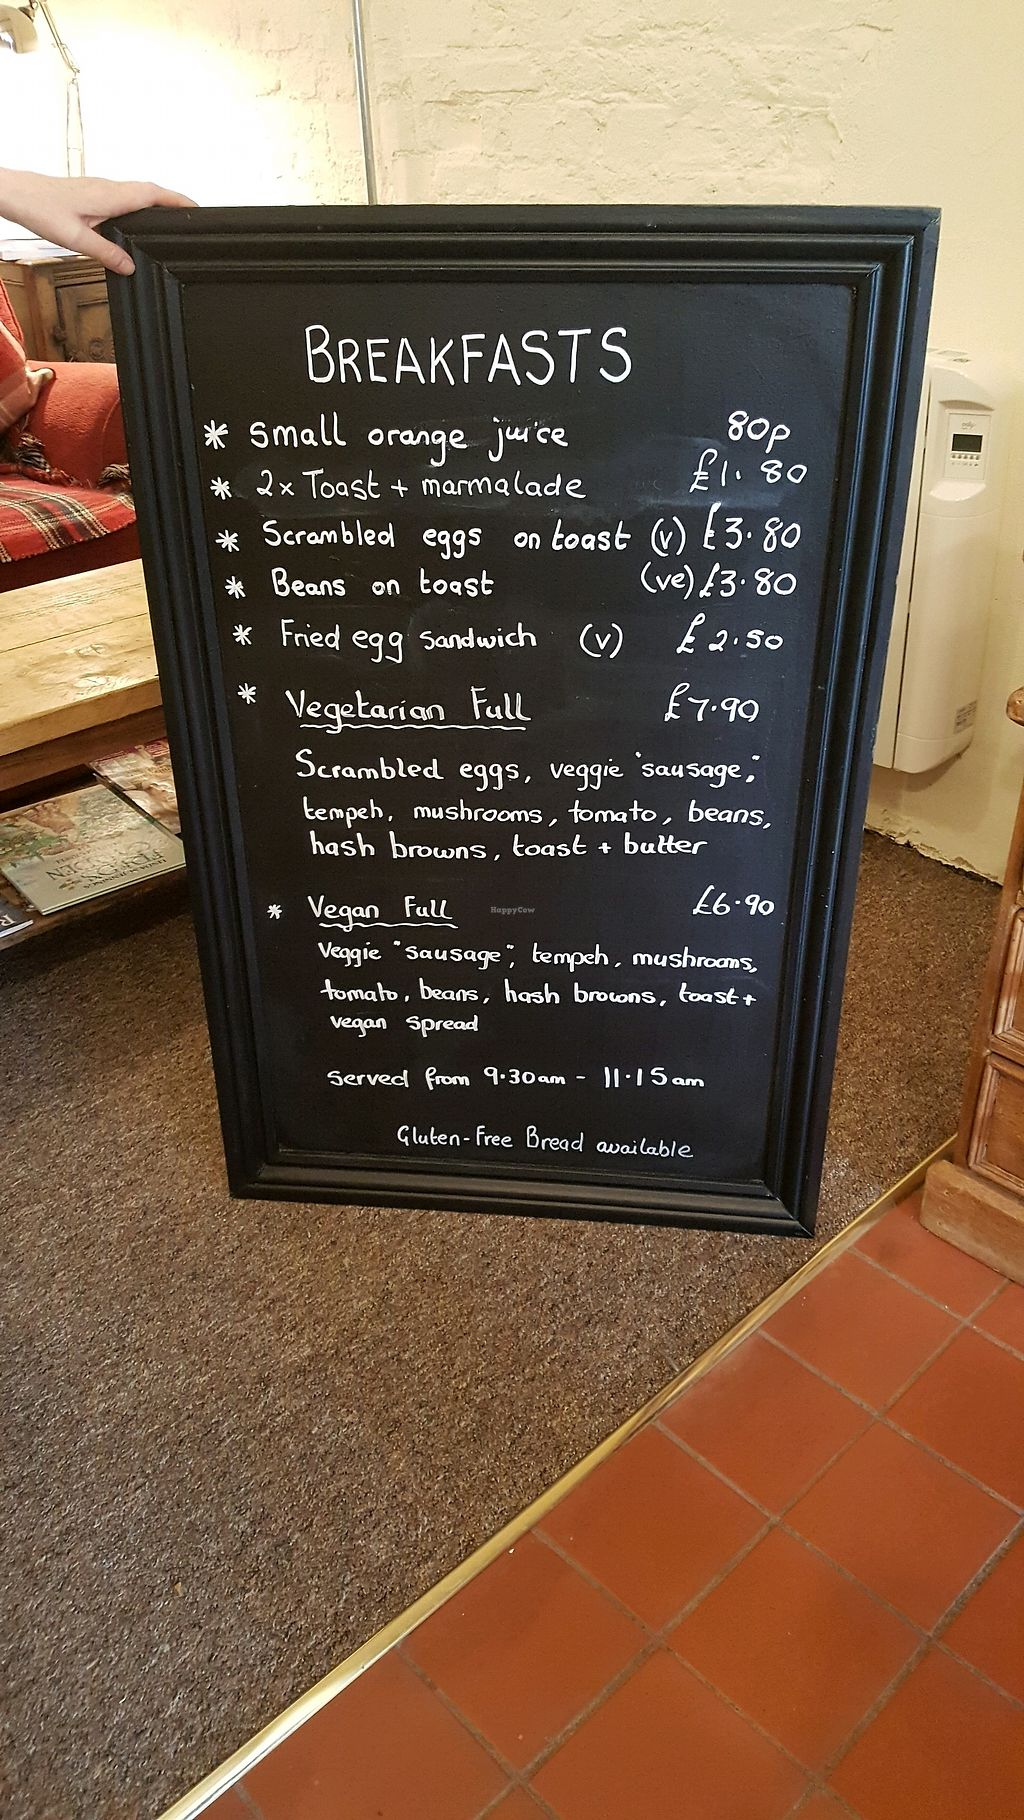 """Photo of The Green Cottage  by <a href=""""/members/profile/KarlAyers"""">KarlAyers</a> <br/>Breakfast Menu <br/> March 14, 2018  - <a href='/contact/abuse/image/110024/370556'>Report</a>"""